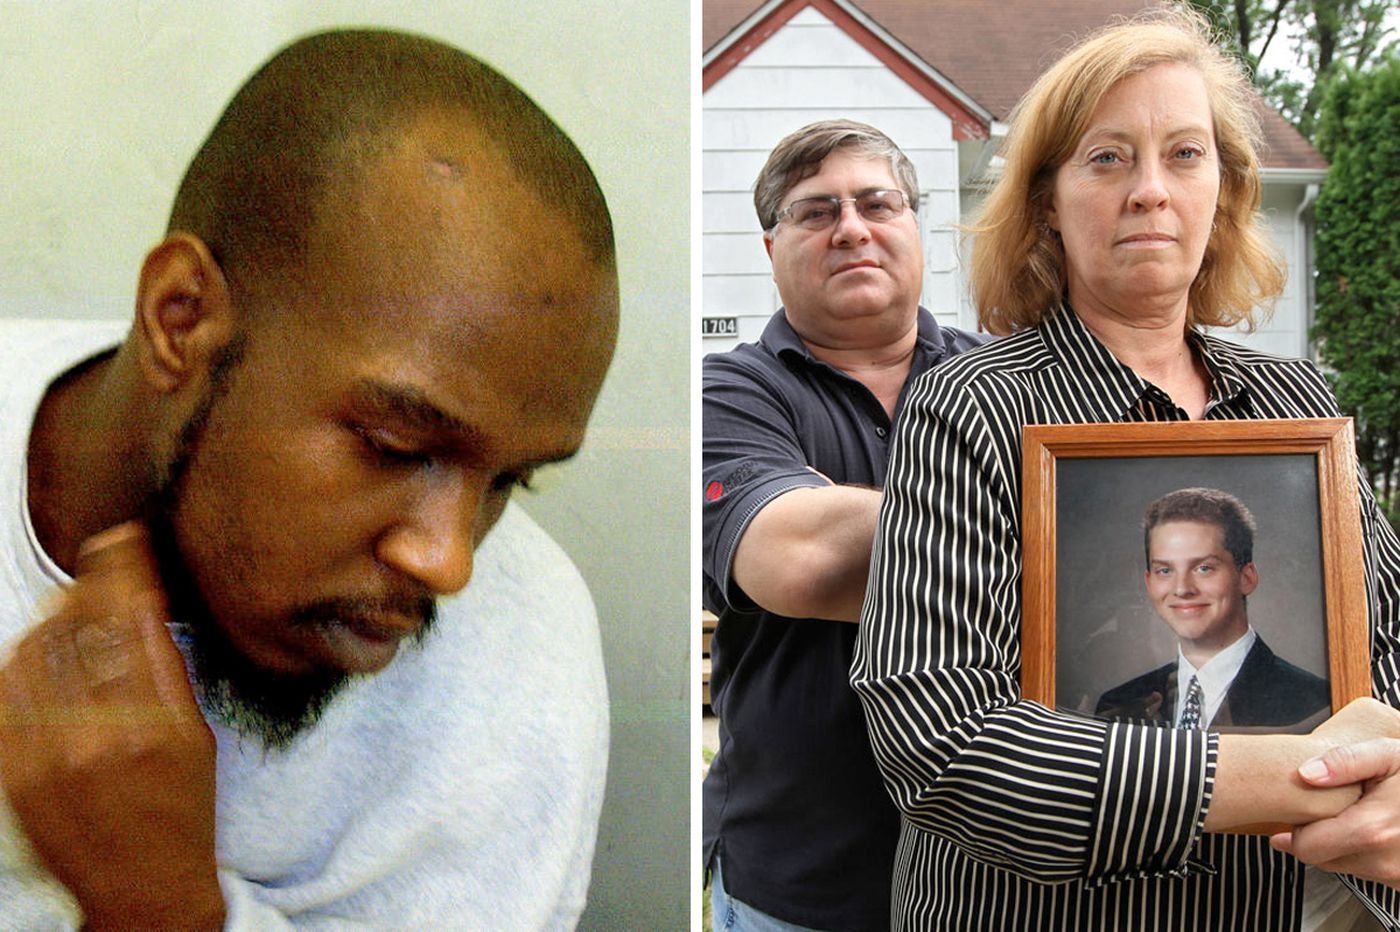 'I'm done with this,' Jones says as Zabel's mother takes stand